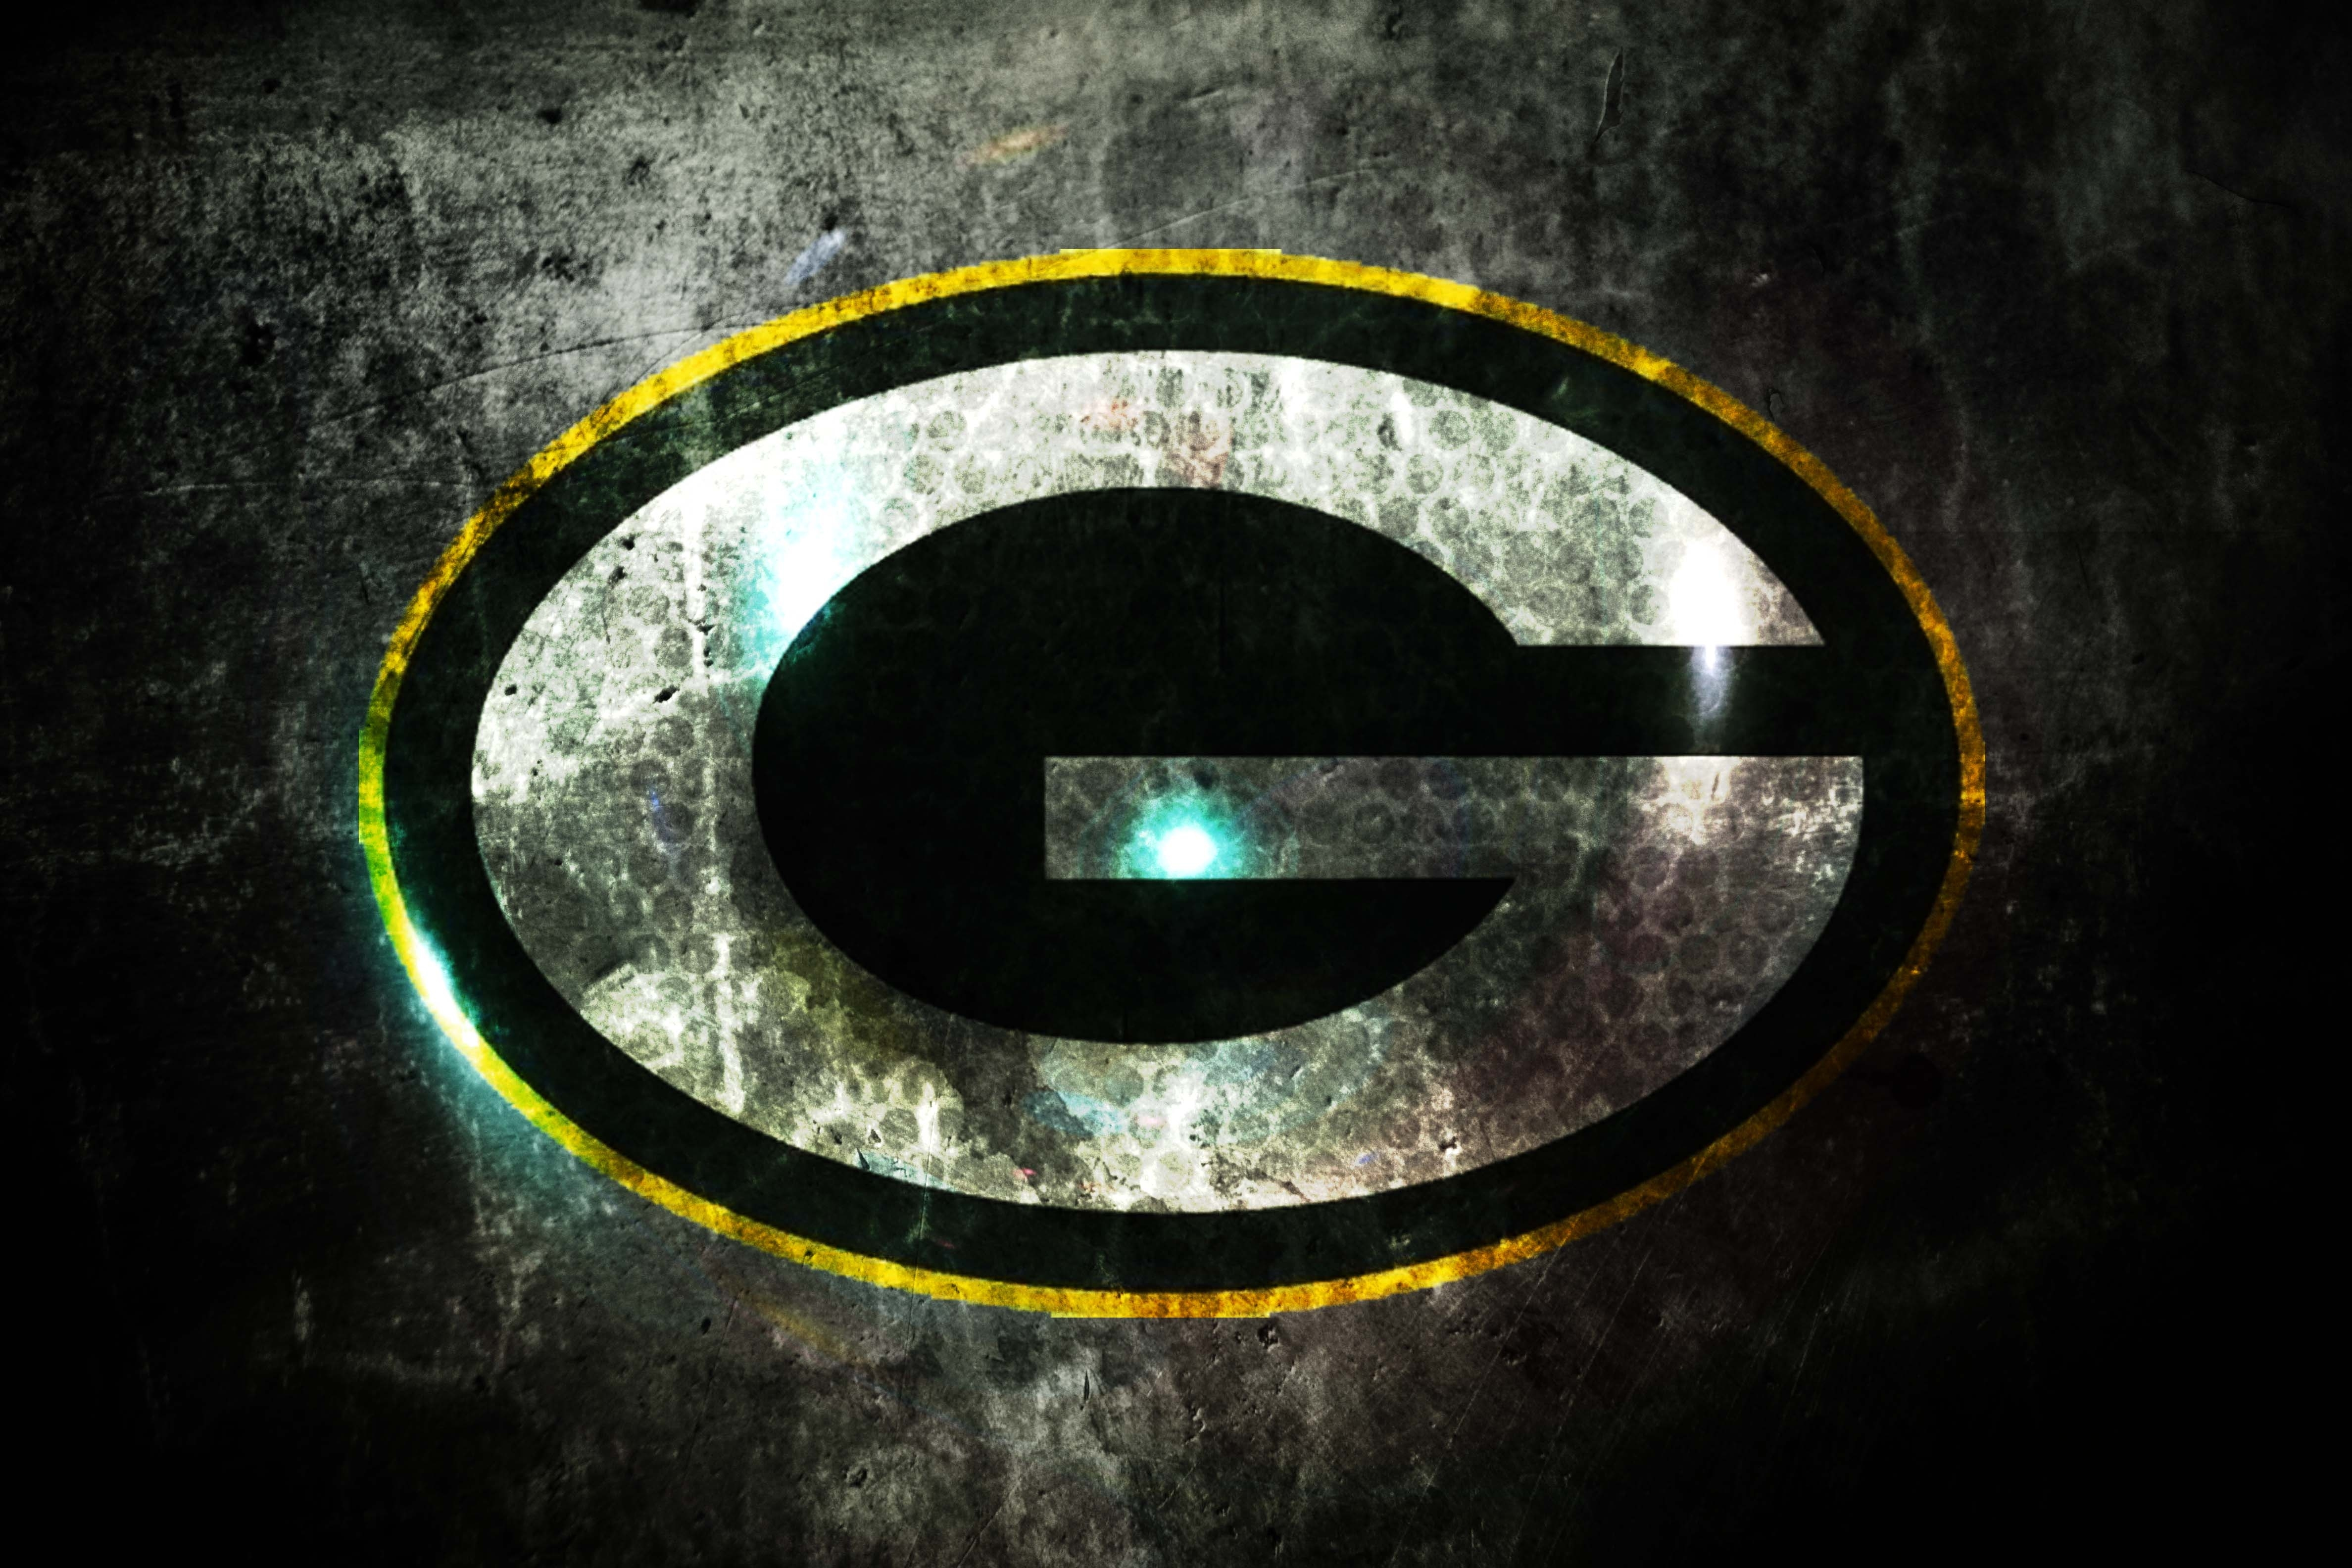 10 Latest Green Bay Packers Screen Savers FULL HD 1920×1080 For PC Background